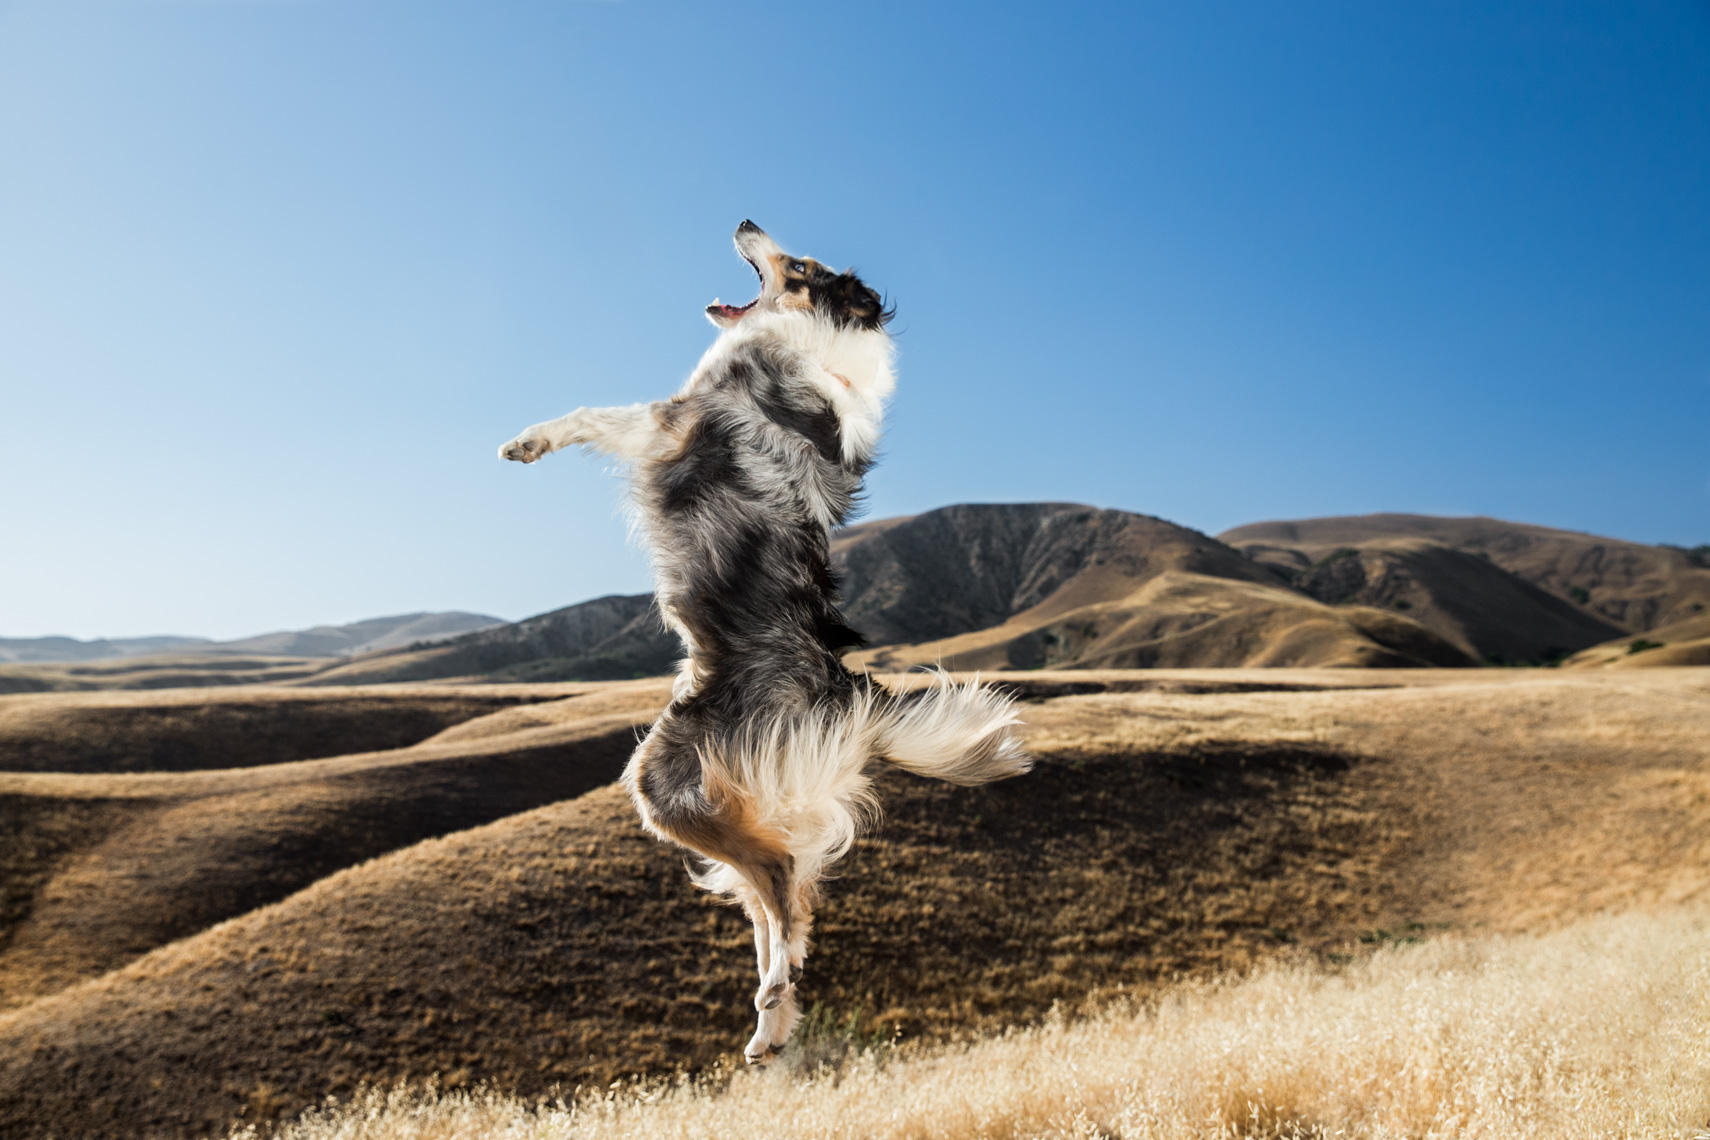 Los Angeles Dog Photography, Michael Brian, Purina, Border Collie, Big Sky Movie Ranch, Waggin